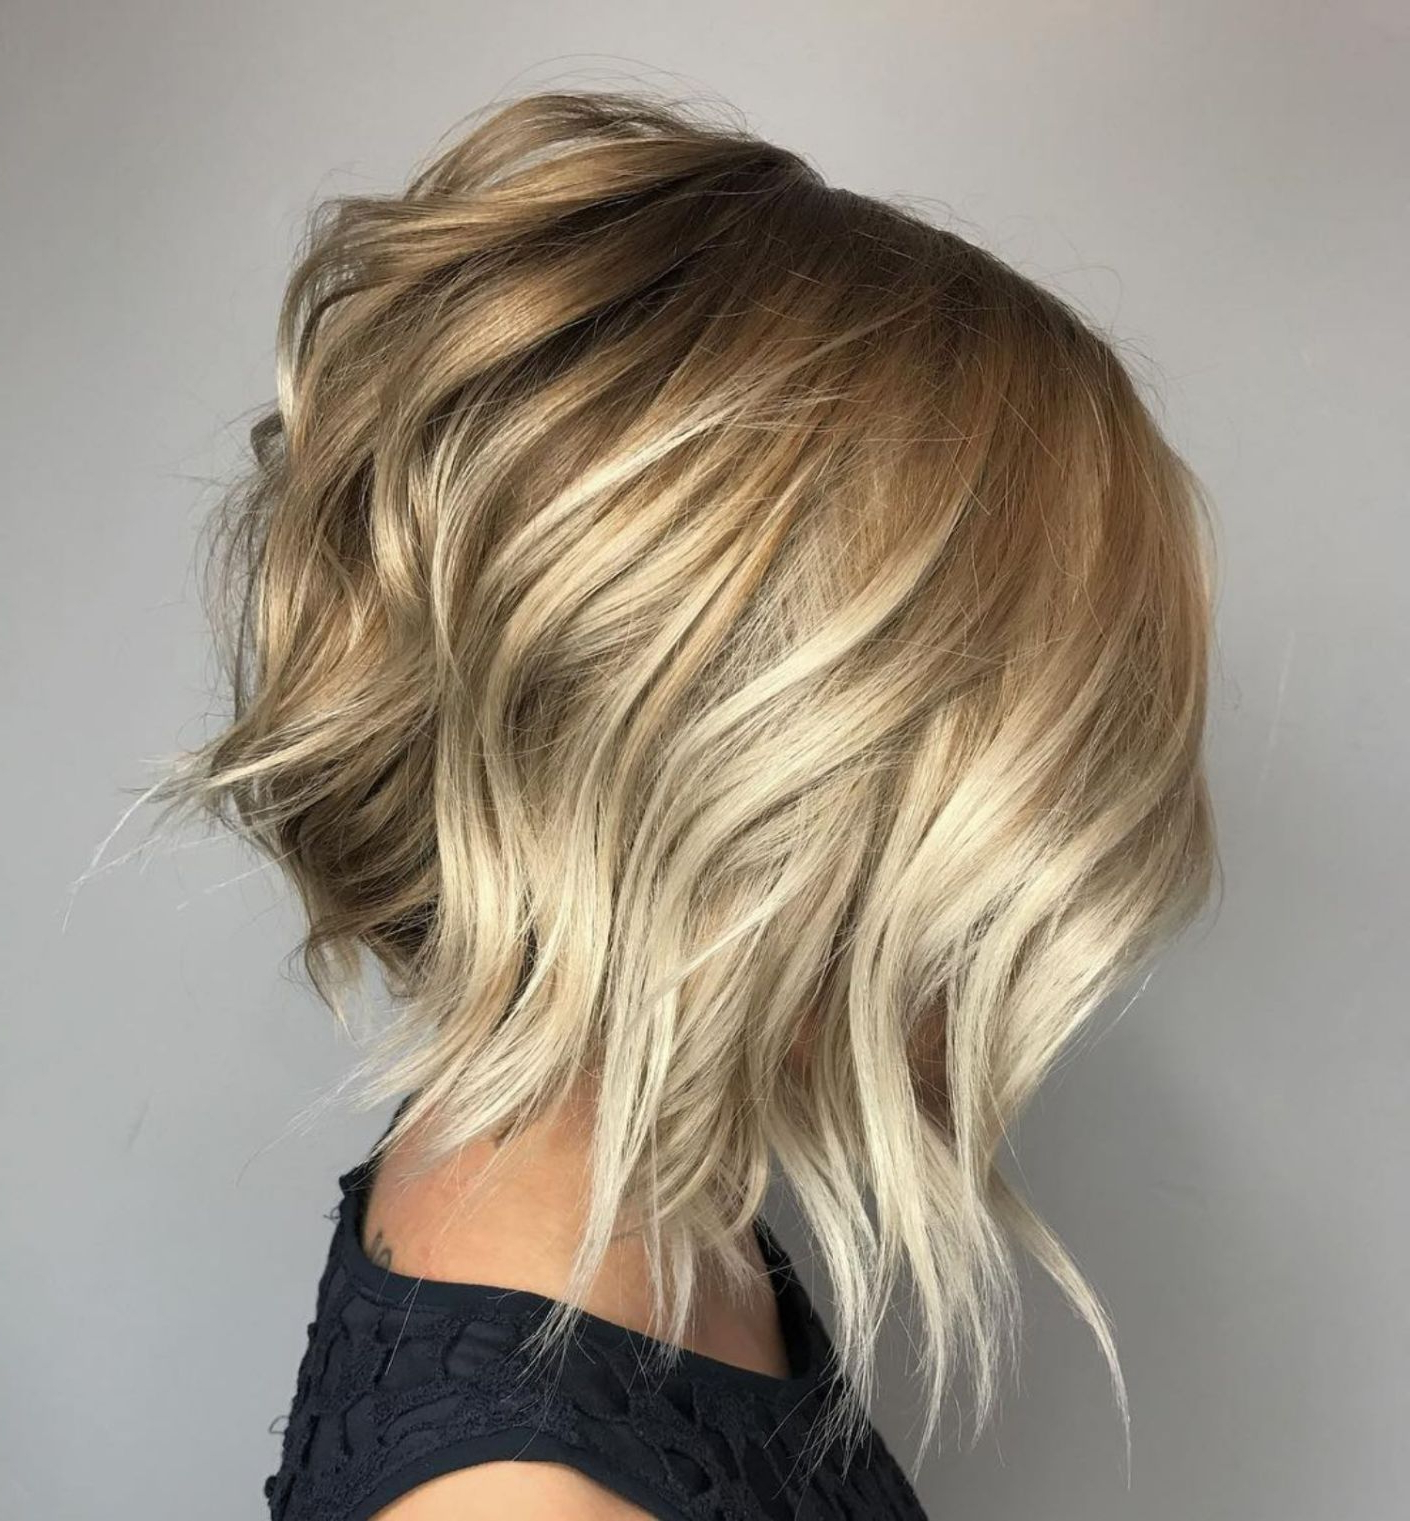 70 Fabulous Choppy Bob Hairstyles In 2018 | Hair Styles | Pinterest For Hazel Blonde Razored Bob Hairstyles (View 16 of 20)